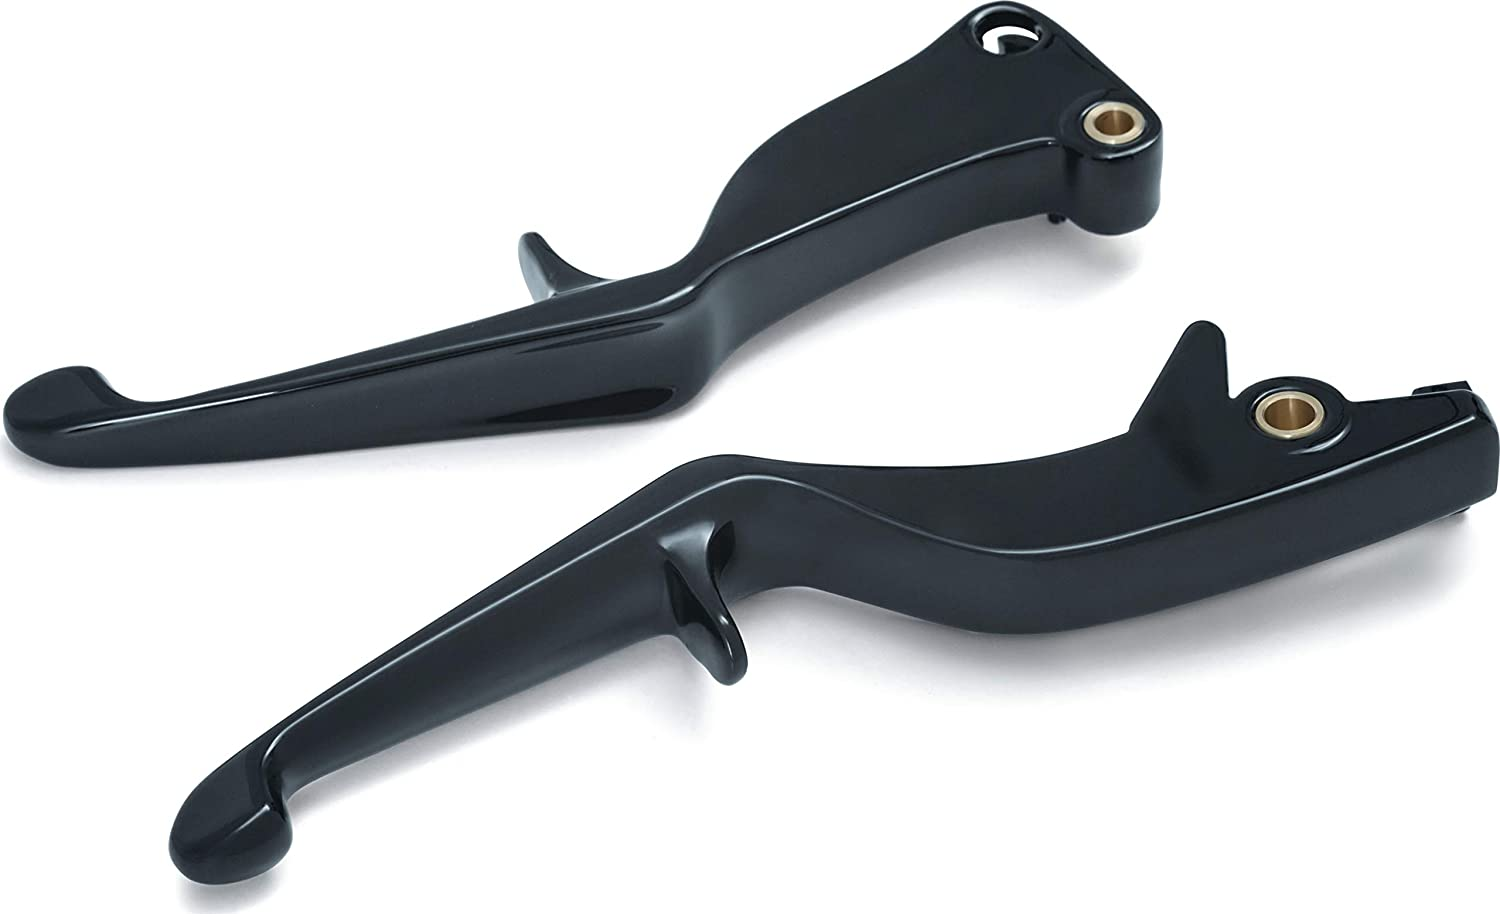 Gloss Black Clutch and Brake Trigger Levers for 2008-17 Victory Motorcycles with Cable Clutch Kuryakyn 7128 Motorcycle Handlebar Accessory 1 Pair